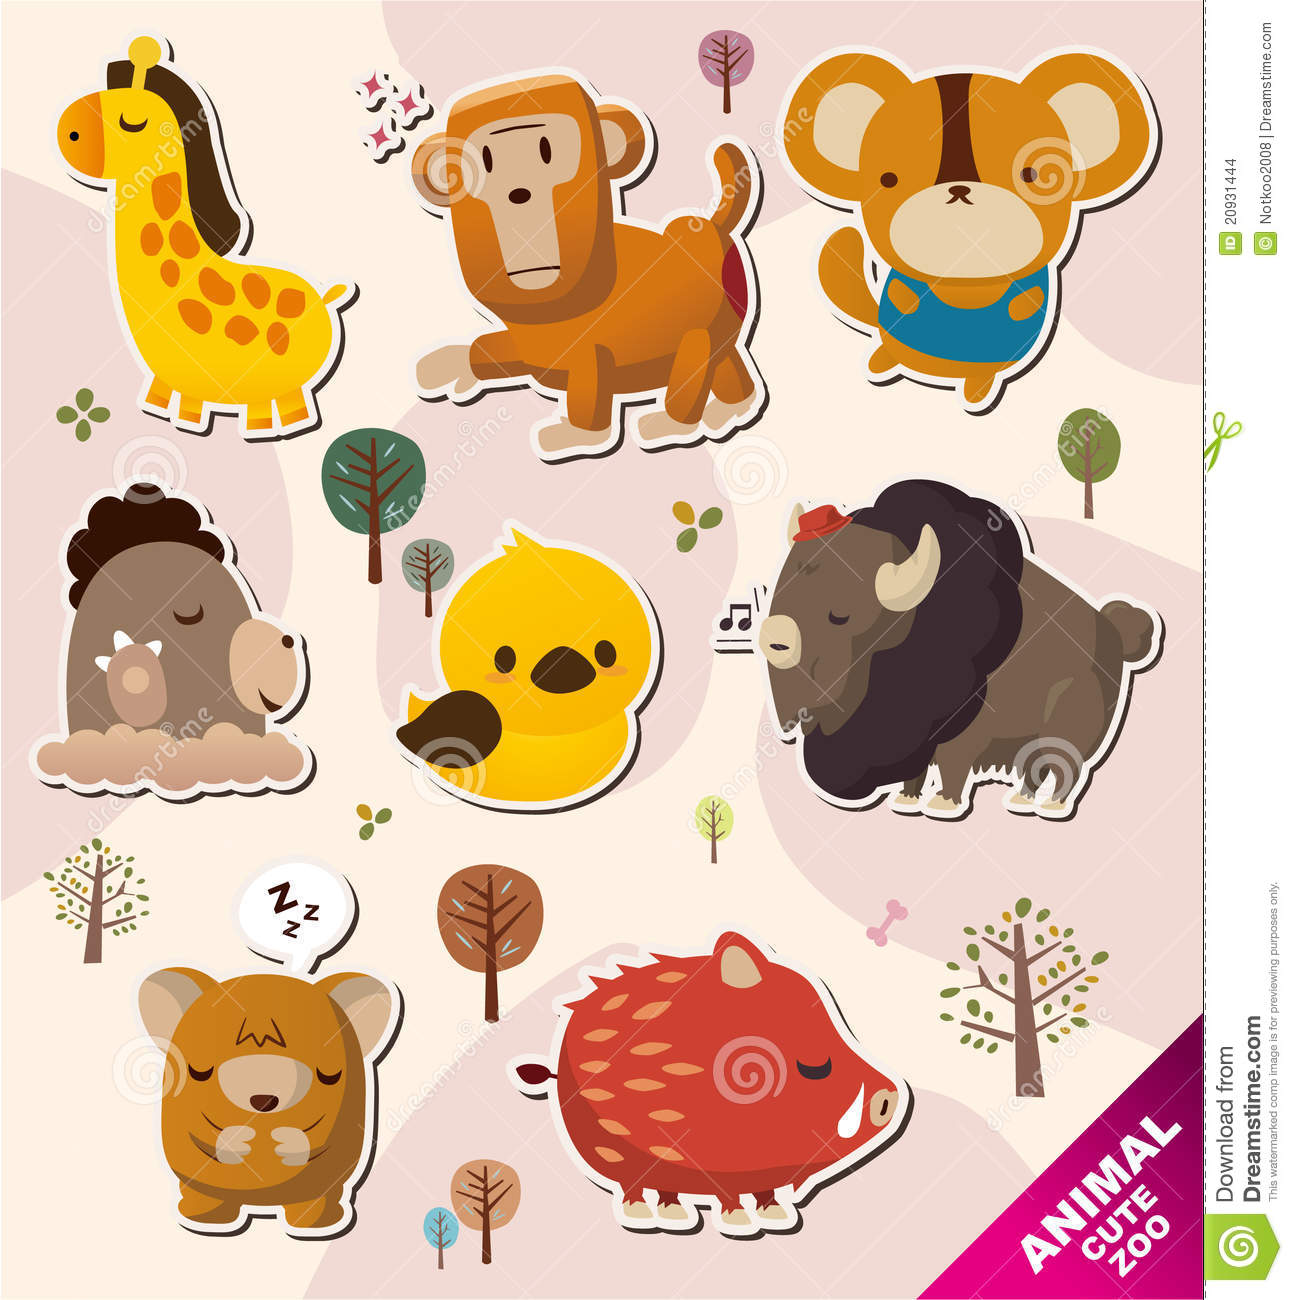 cartoon animal stickers in - photo #11